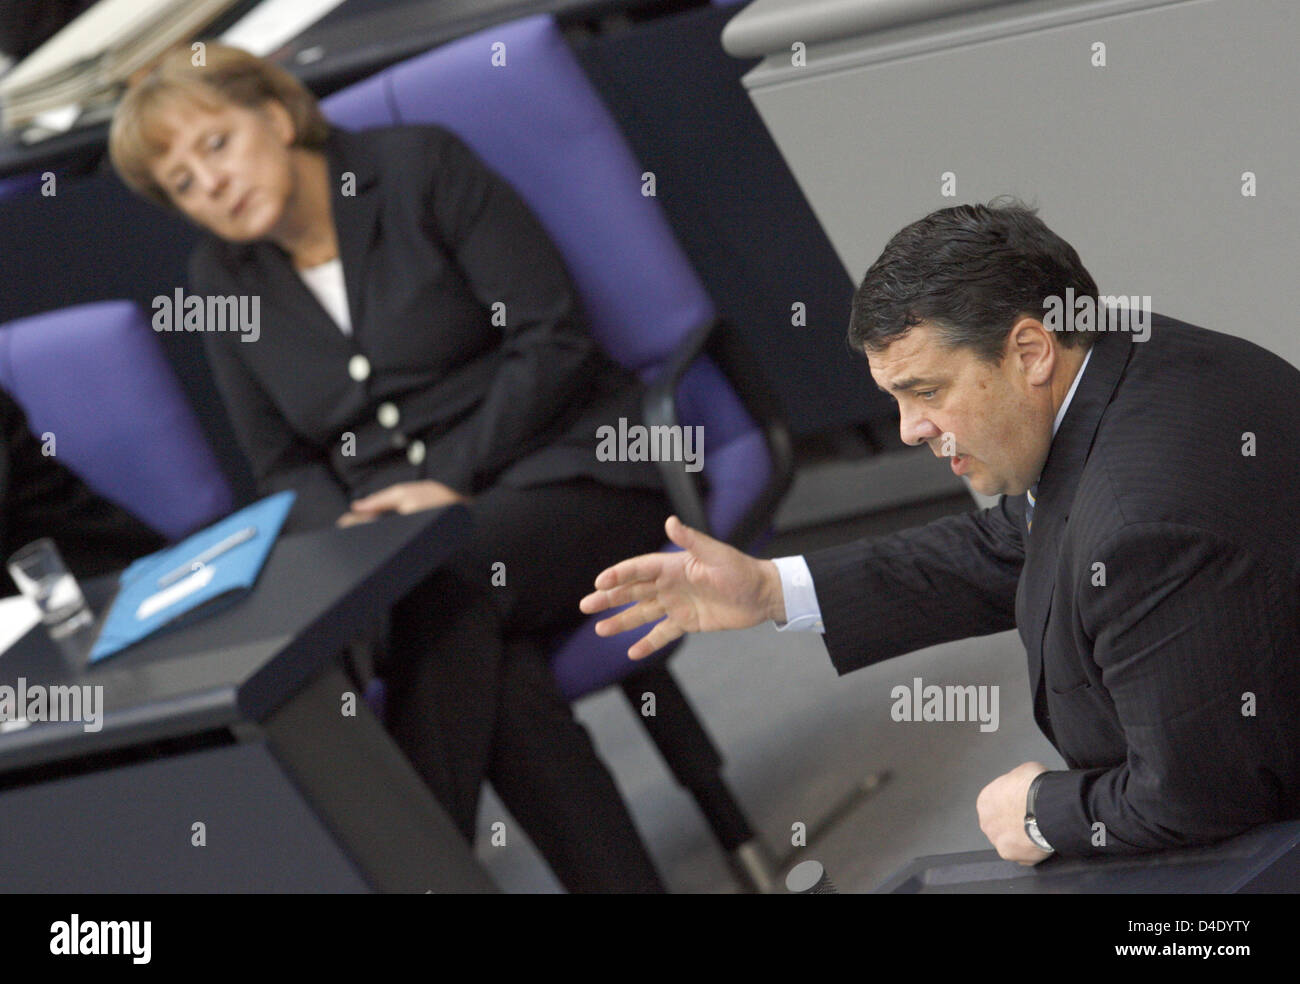 German Chancellor Angela Merkel listens attentively to a speech delivered by Environment Minister Sigmar Gabriel at the Bundestag in Berlin, Germany, 08 May 2008. The Bundestag debates on the extinction of vital plant and animal species in view of the nature protection conference to be held mid-month in Bonn. Photo: RAINER JENSEN Stock Photo